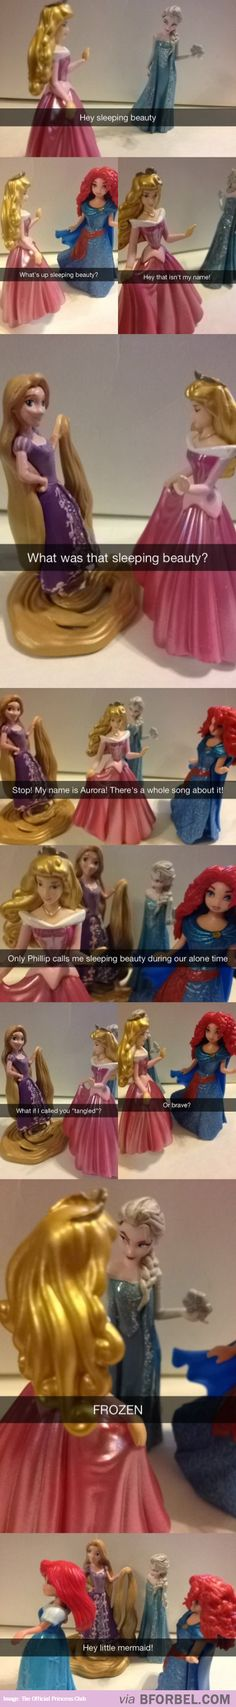 Disney Princesses Forgetting Each Other's Real Names…